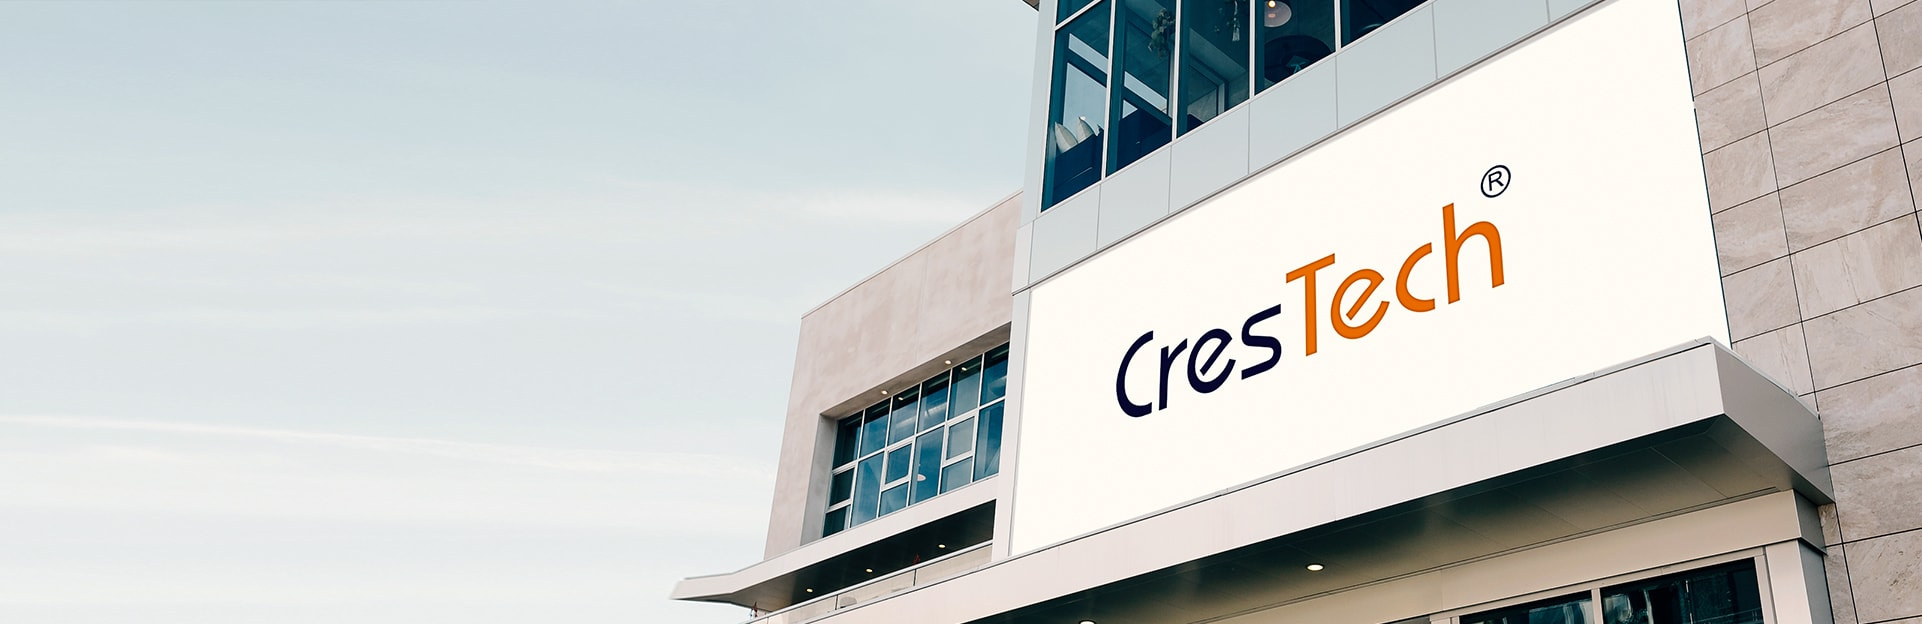 Crestech provides testing services and solutions for Technology, e-commerce, BFSI, Retail, Telecom, Media, Consulting.